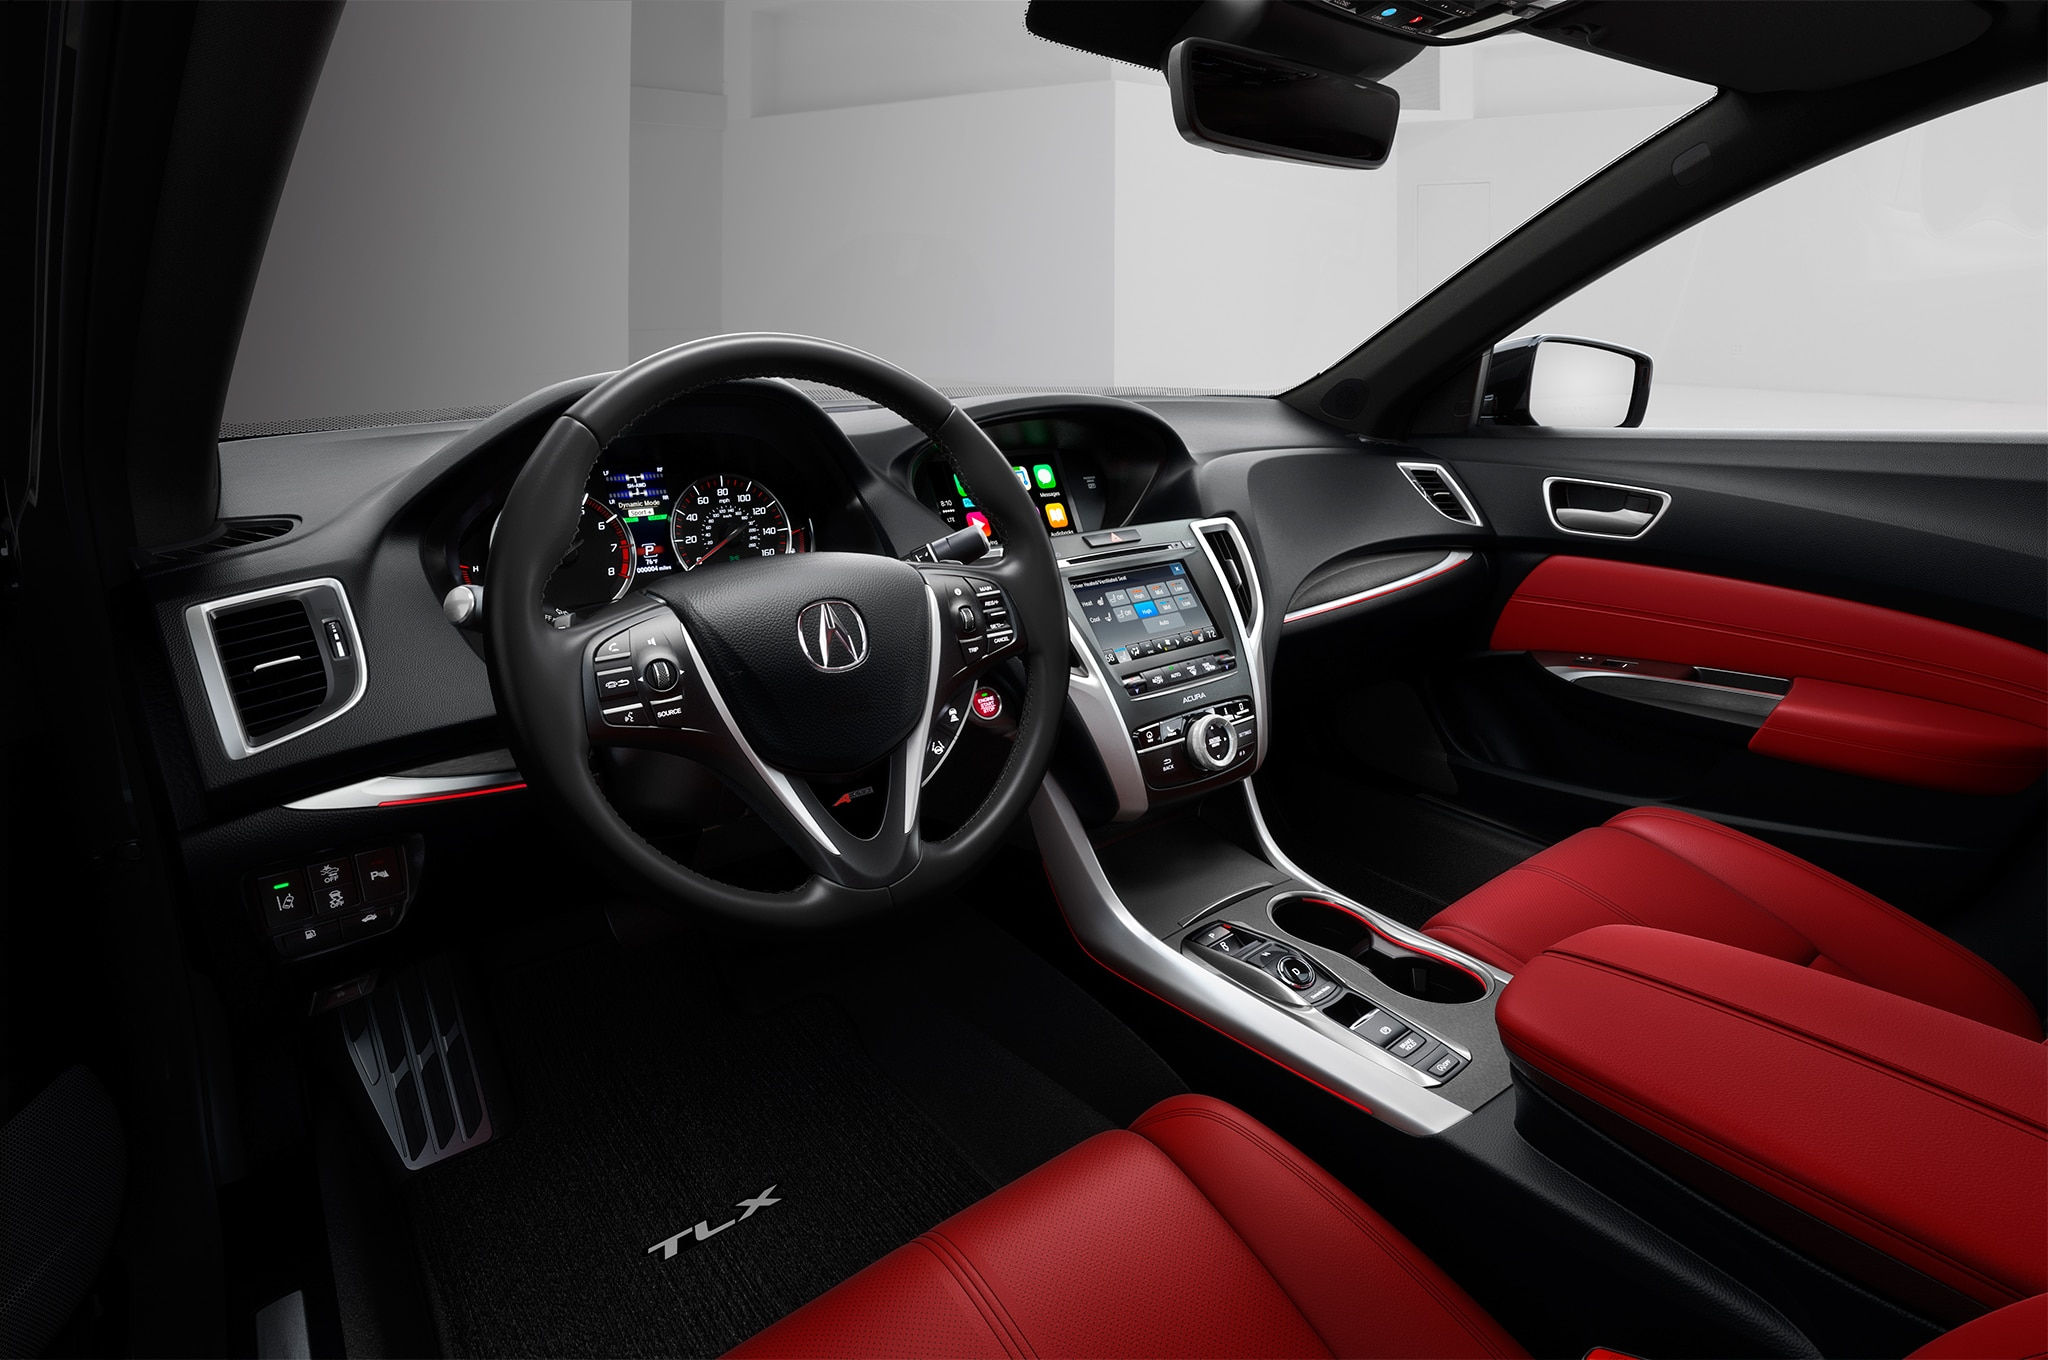 2018 acura mdx interior. wonderful mdx show more in 2018 acura mdx interior